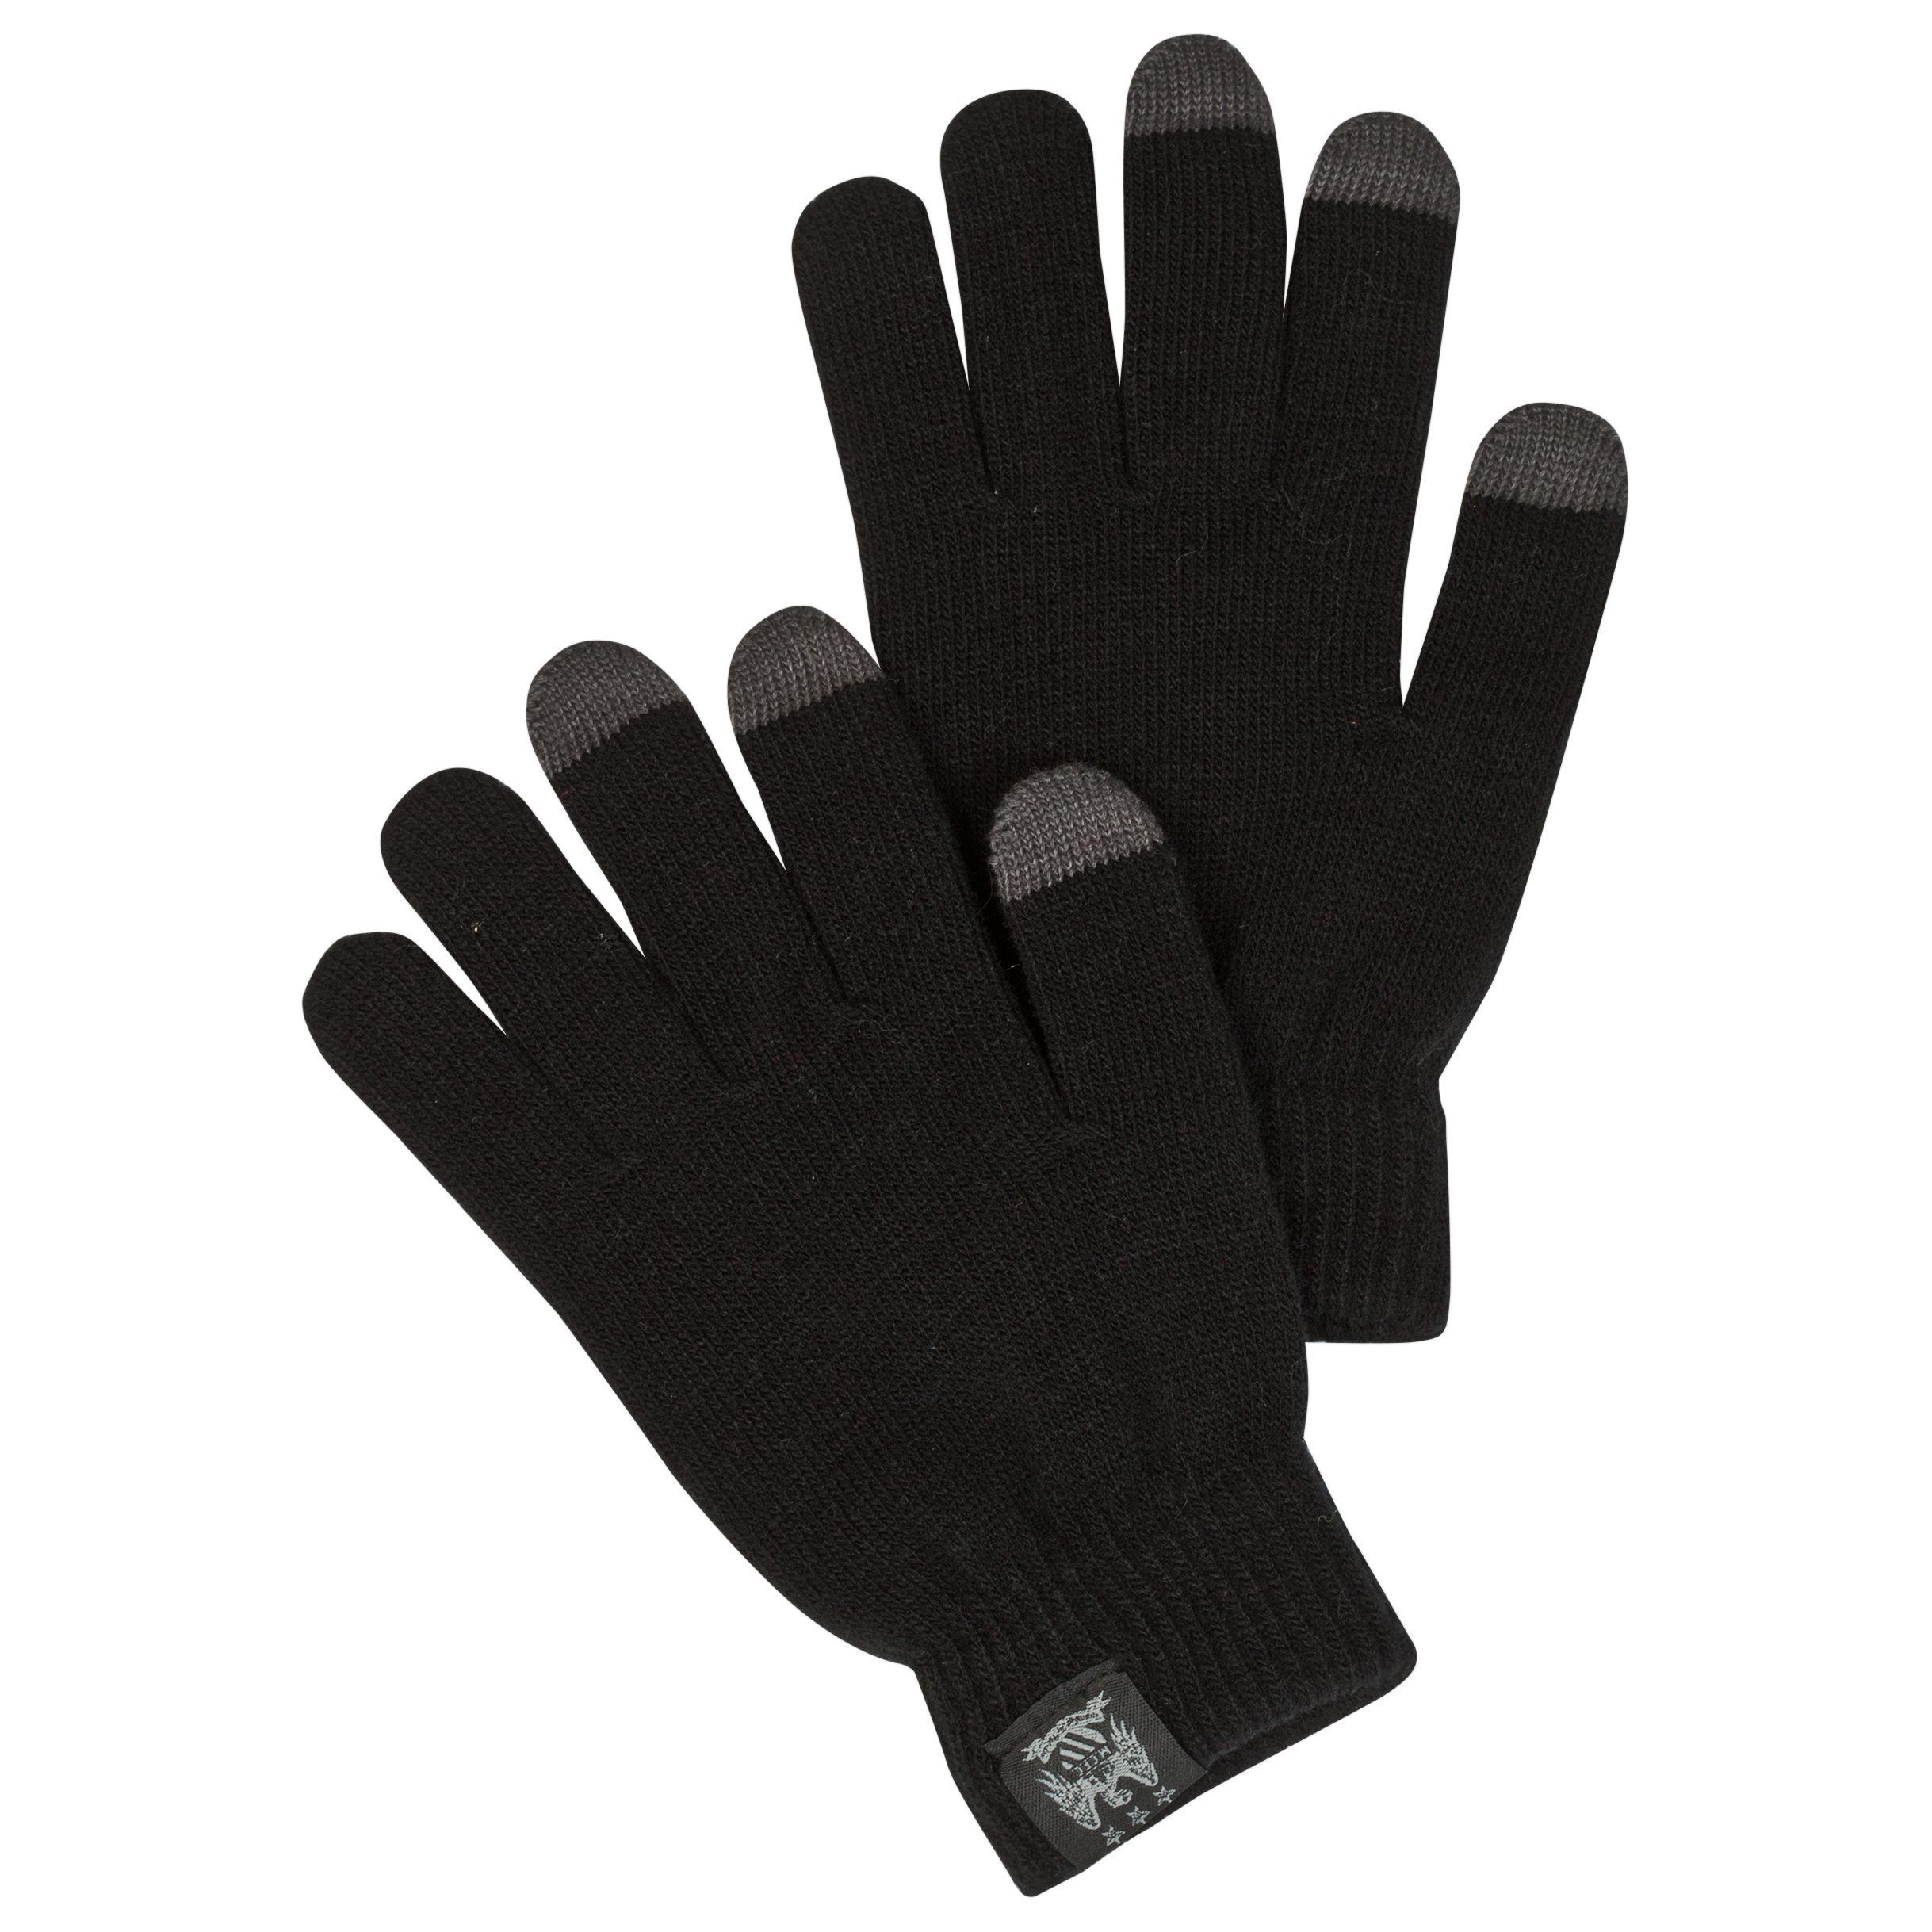 Manchester City Touchscreen Gloves - Black - Adult